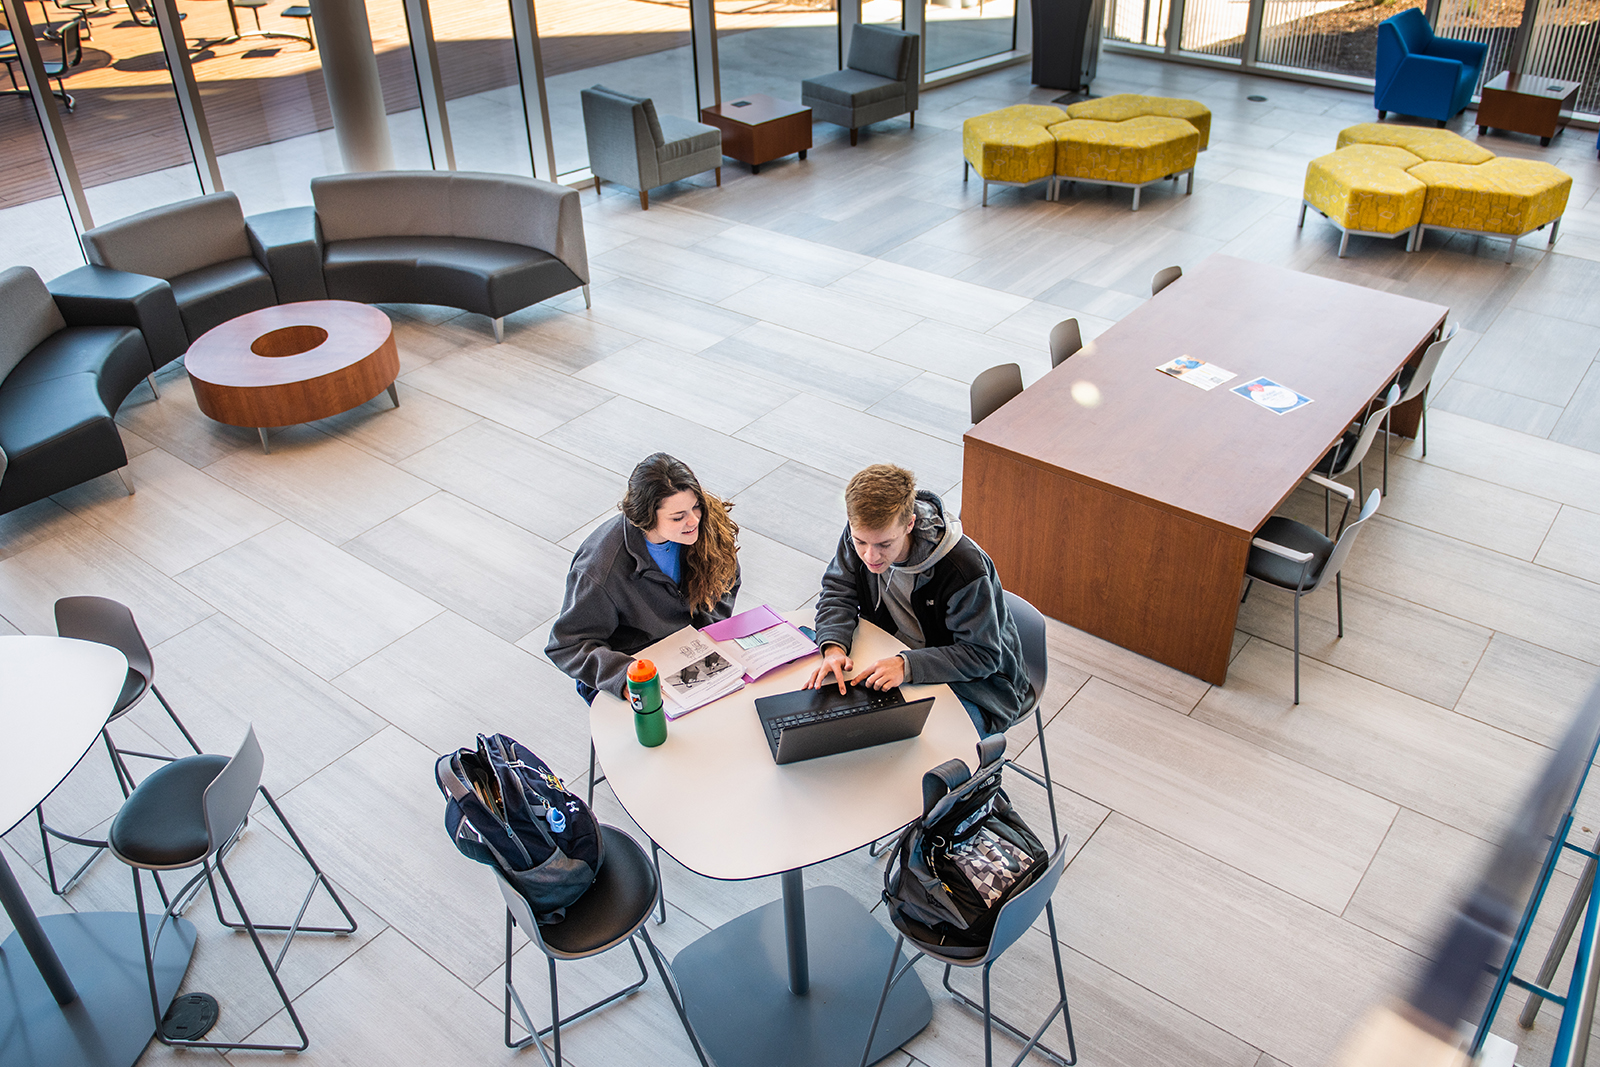 Two students siting at a table looking at a laptop in the new human sciences building.